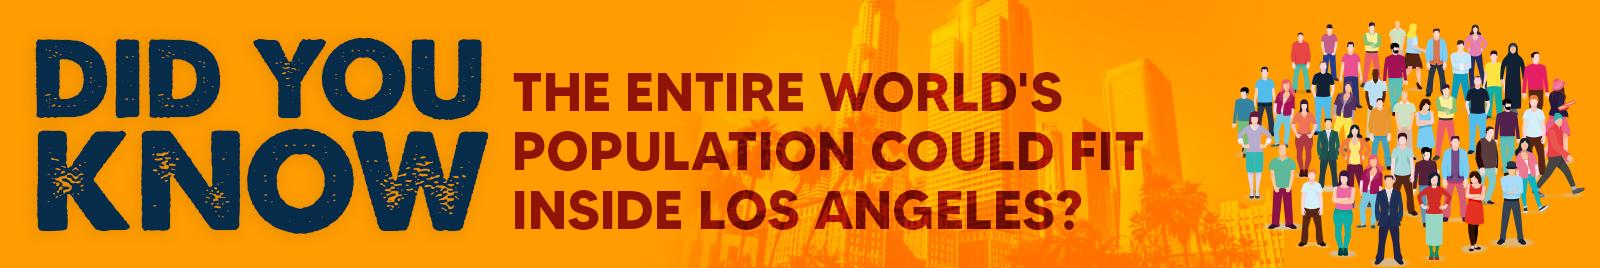 Did you know — the entire world's population could fit inside Los Angeles?